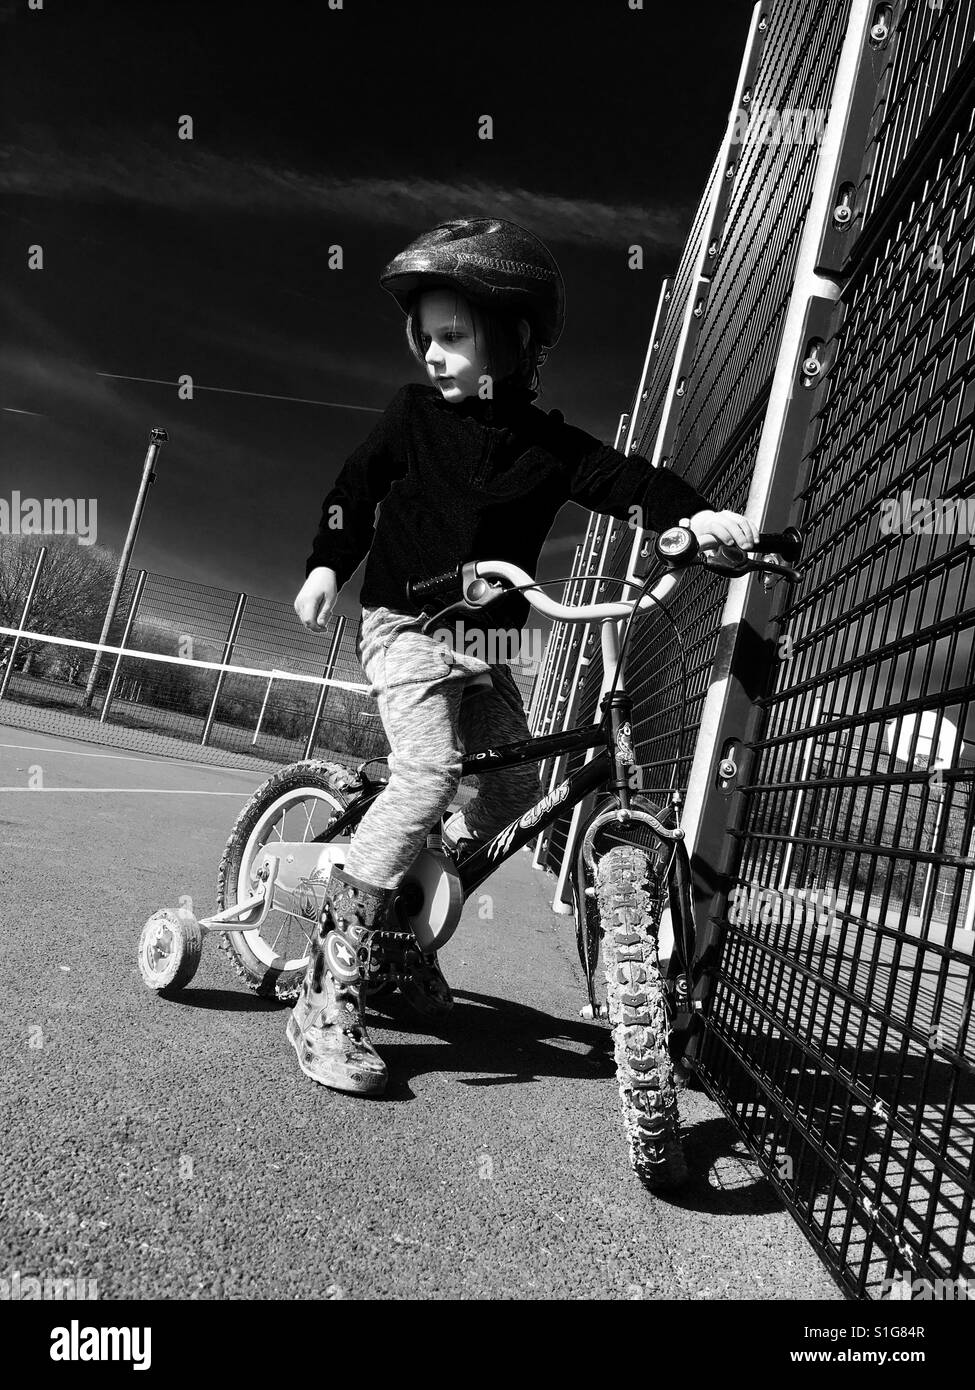 Boy riding bike with stabilisers - Stock Image